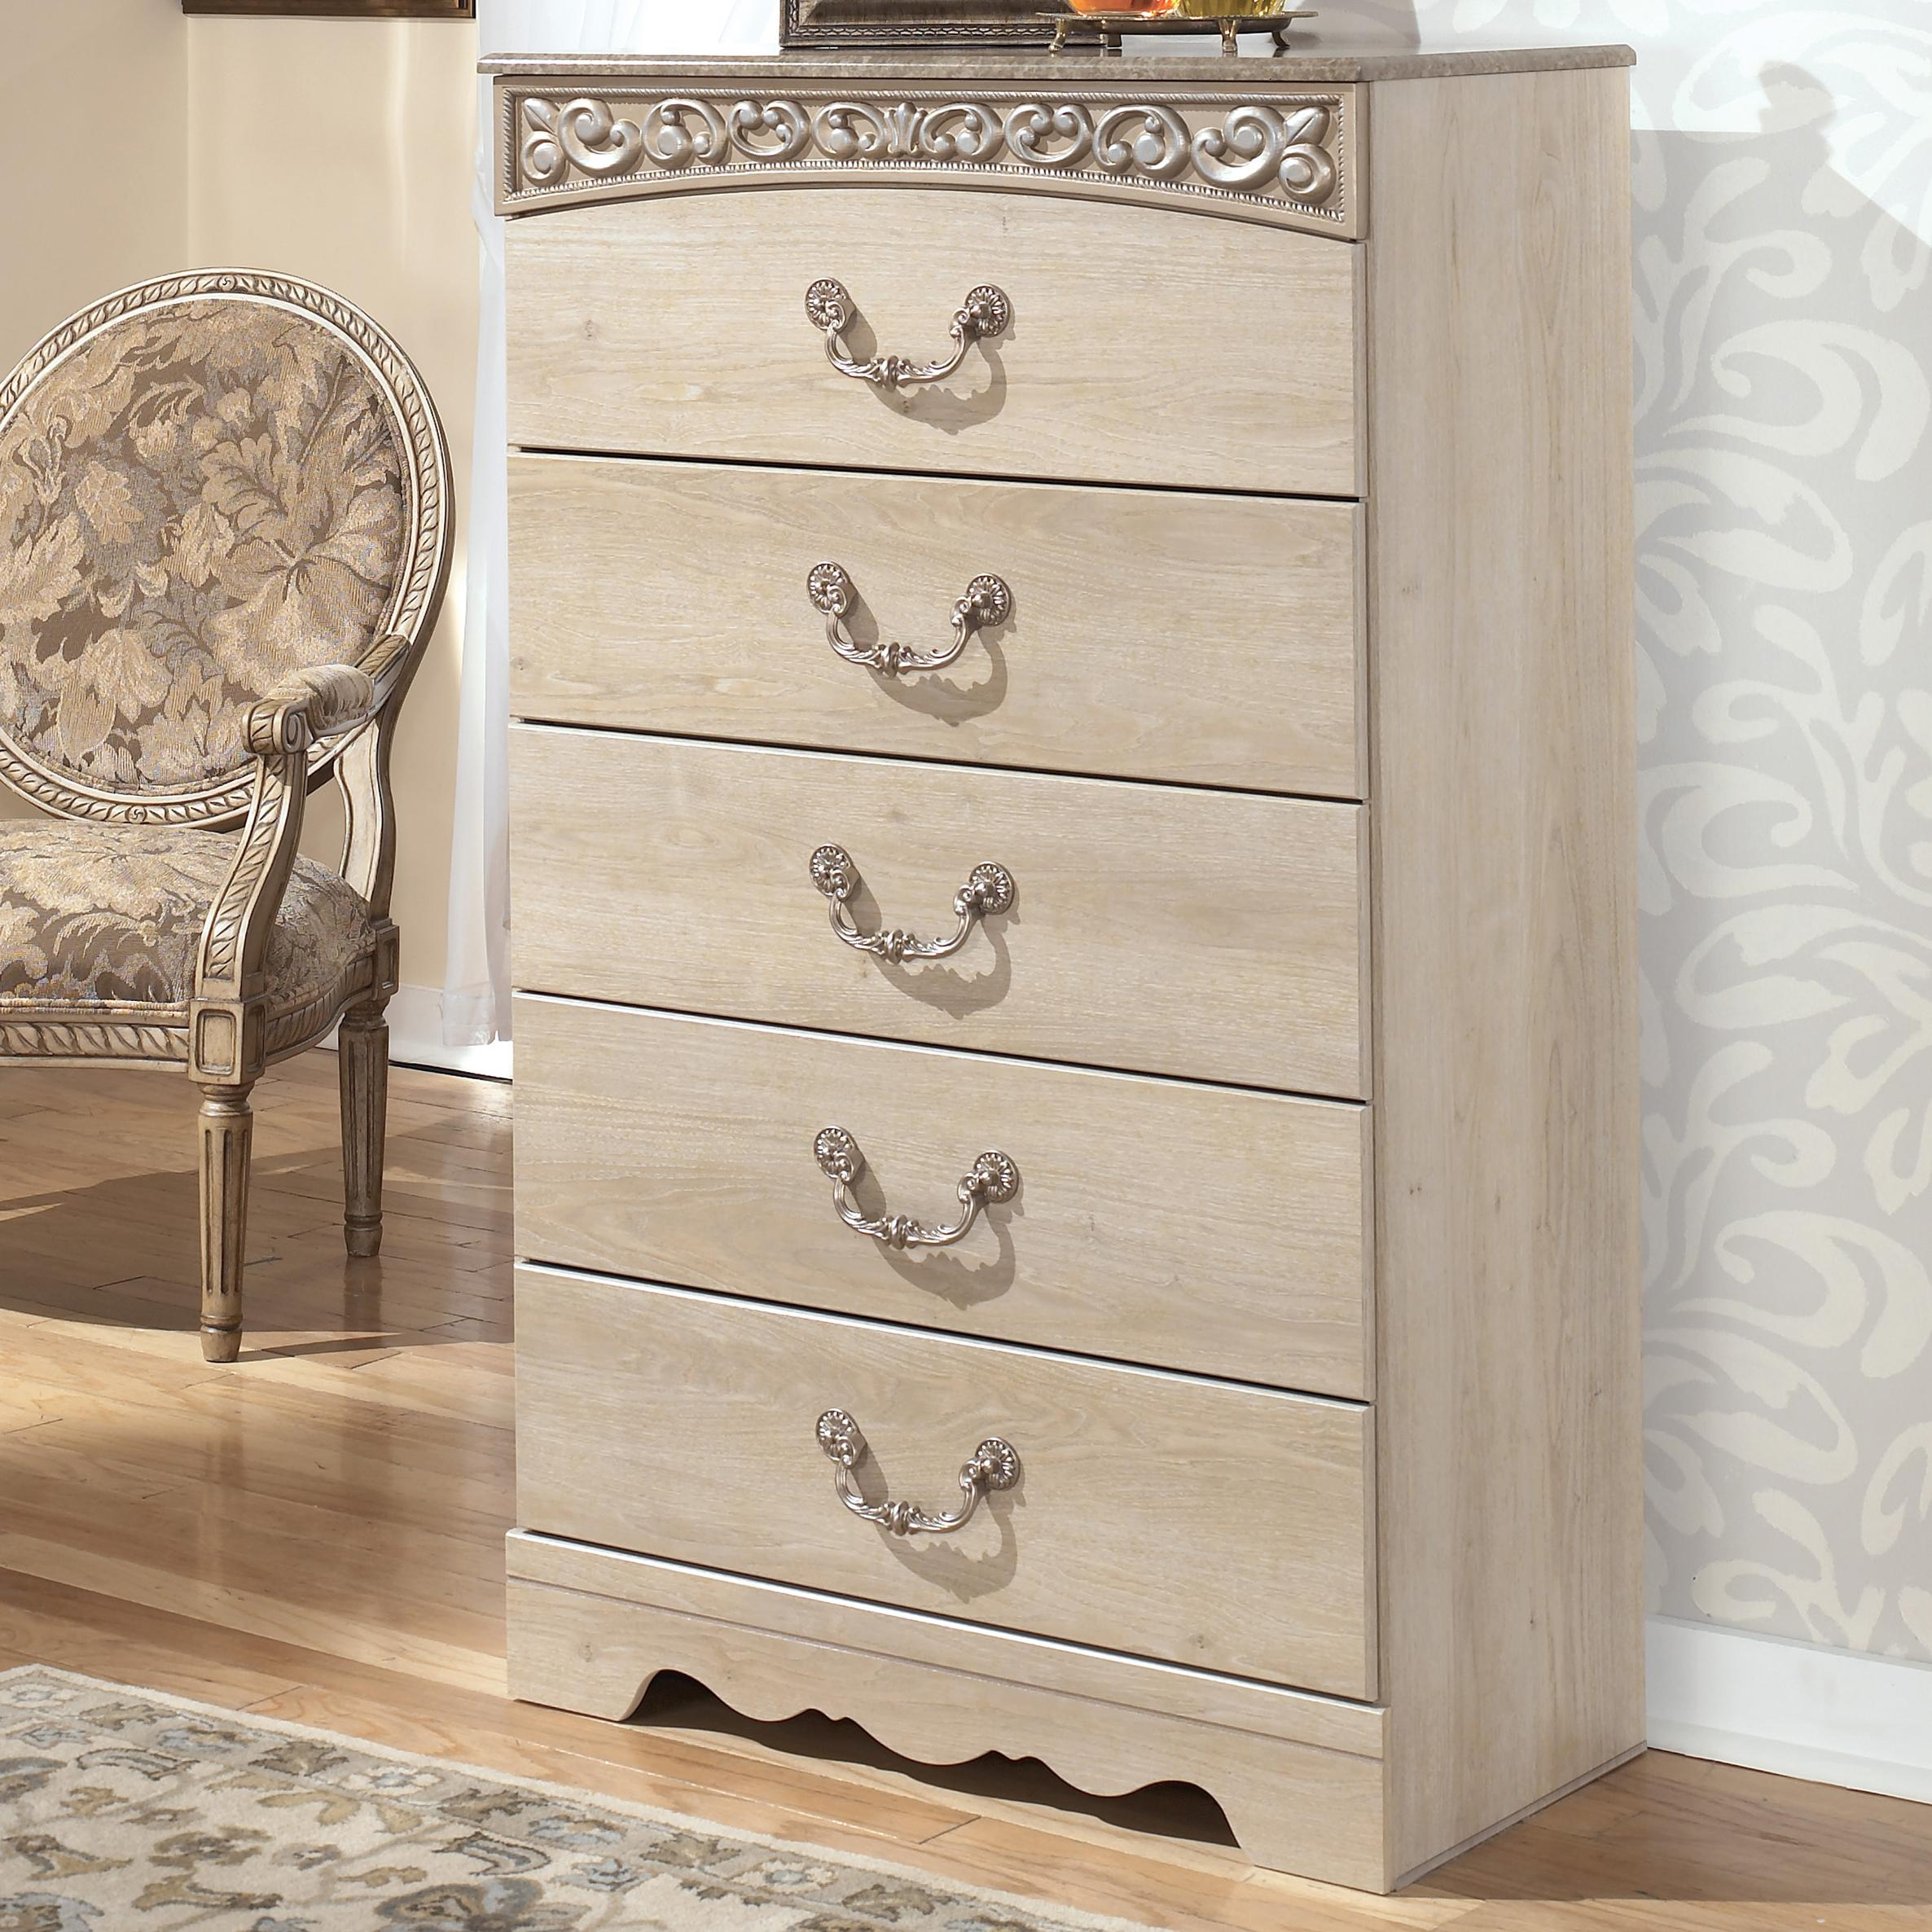 Catalina Chest of Drawers by Signature Design by Ashley at Northeast Factory Direct